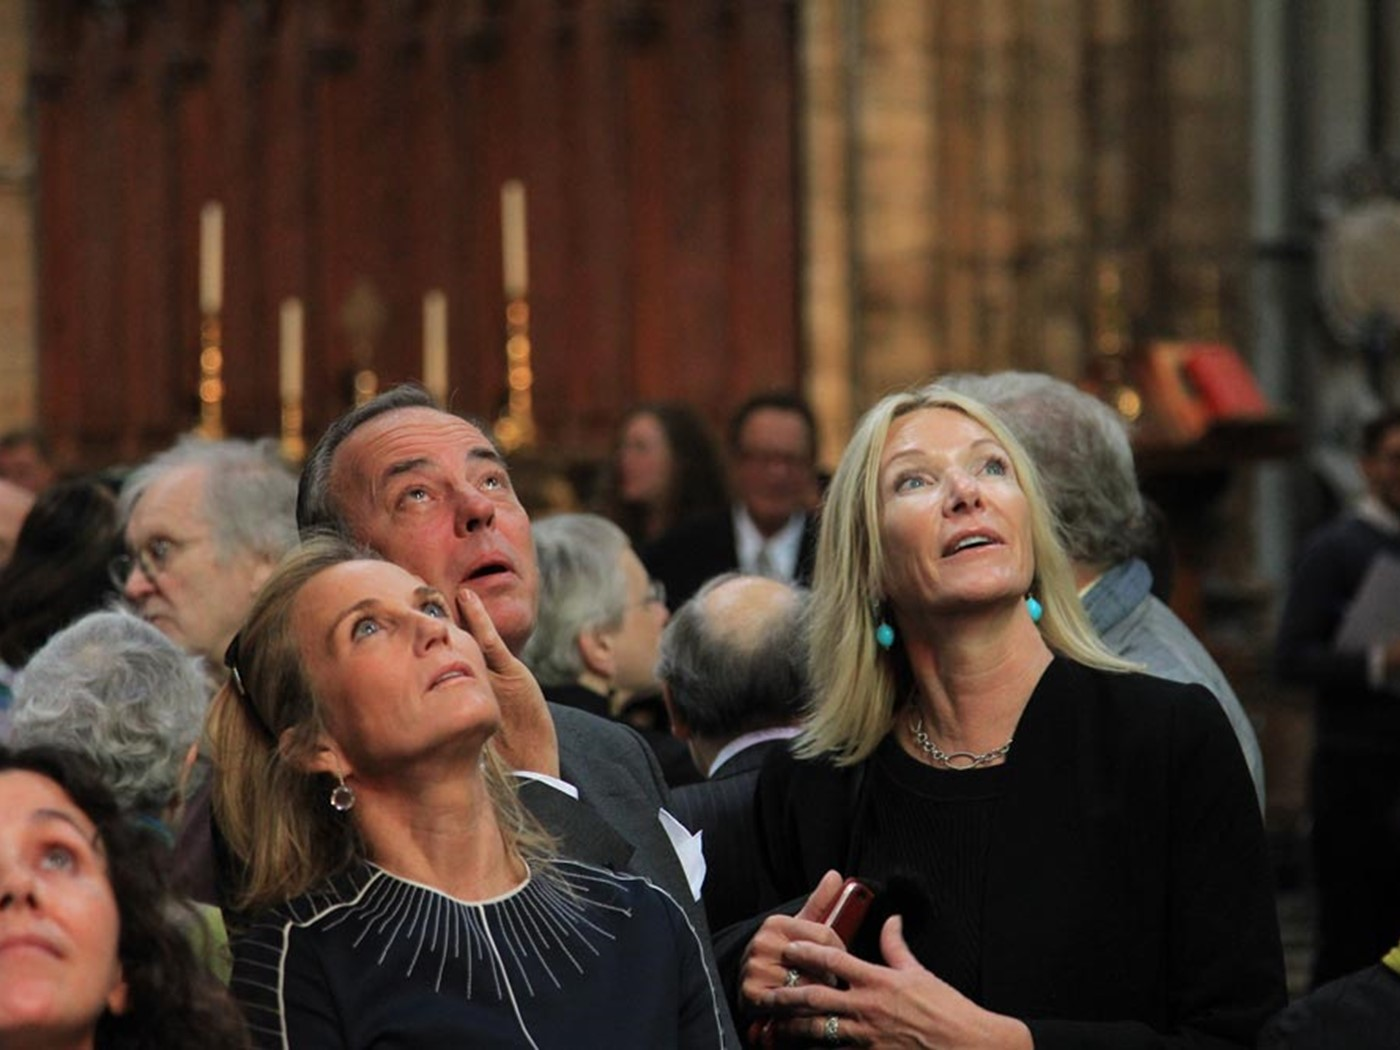 Friends and family of the artist attended the service